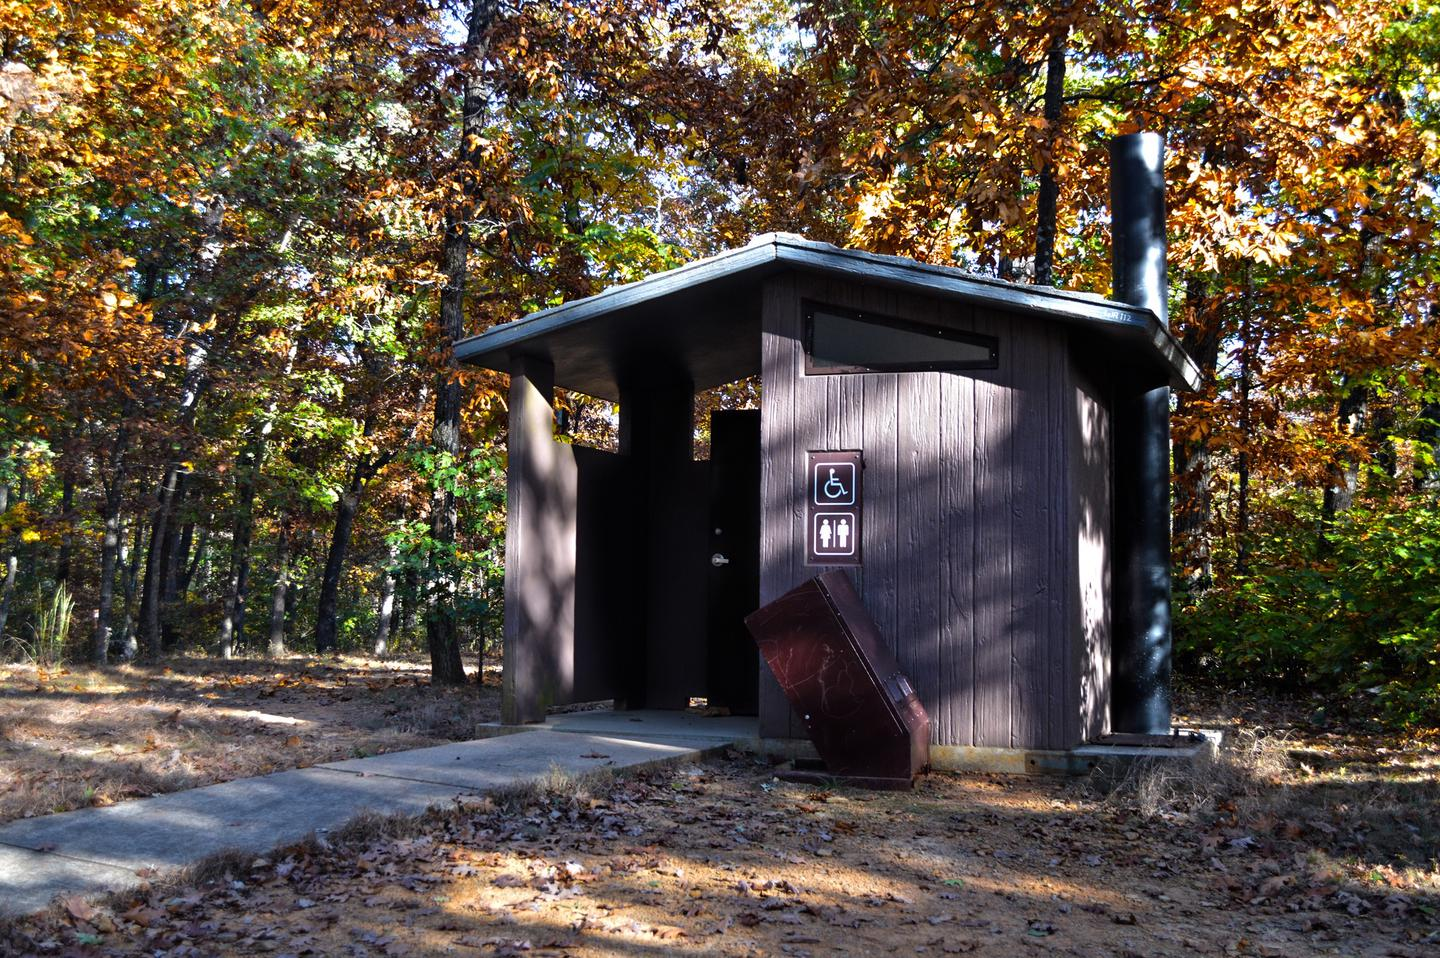 White Rock Mountain, Vault ToiletVault toilet located in the center of the campground.